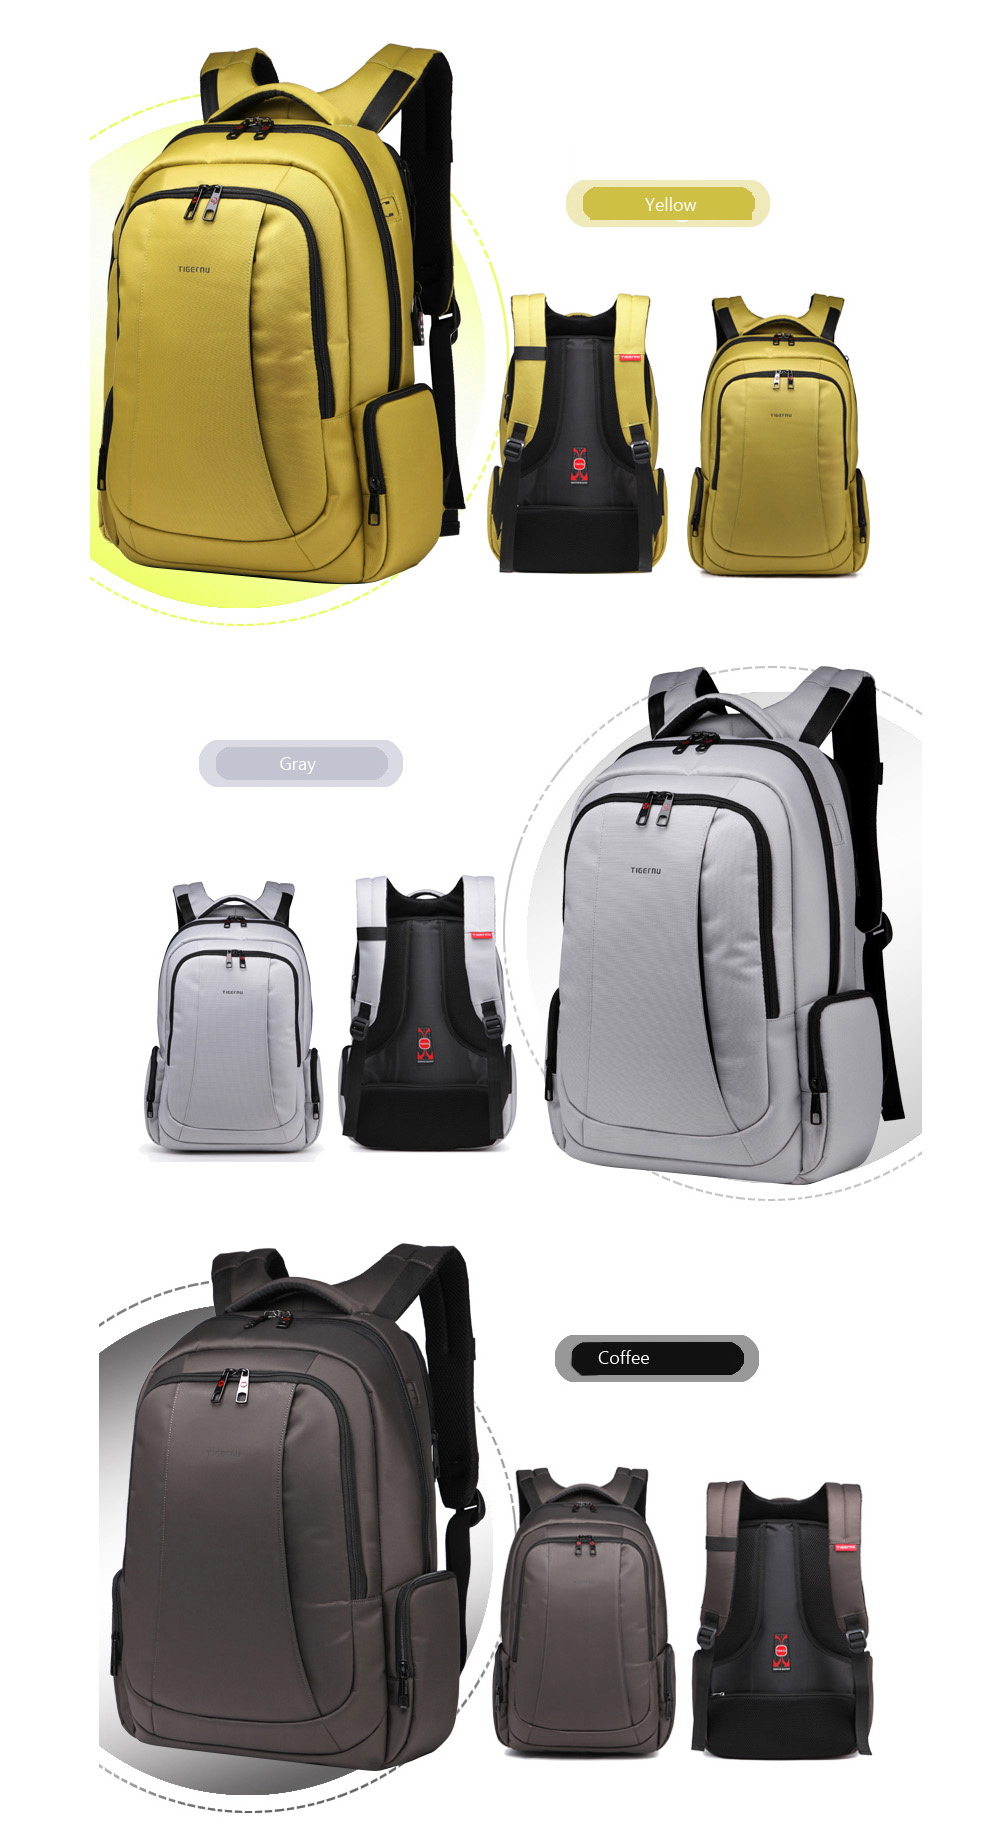 TIGERNU T - B3143 - 01 17 inch Professional Business Laptop Backpack for Outdoor Travel